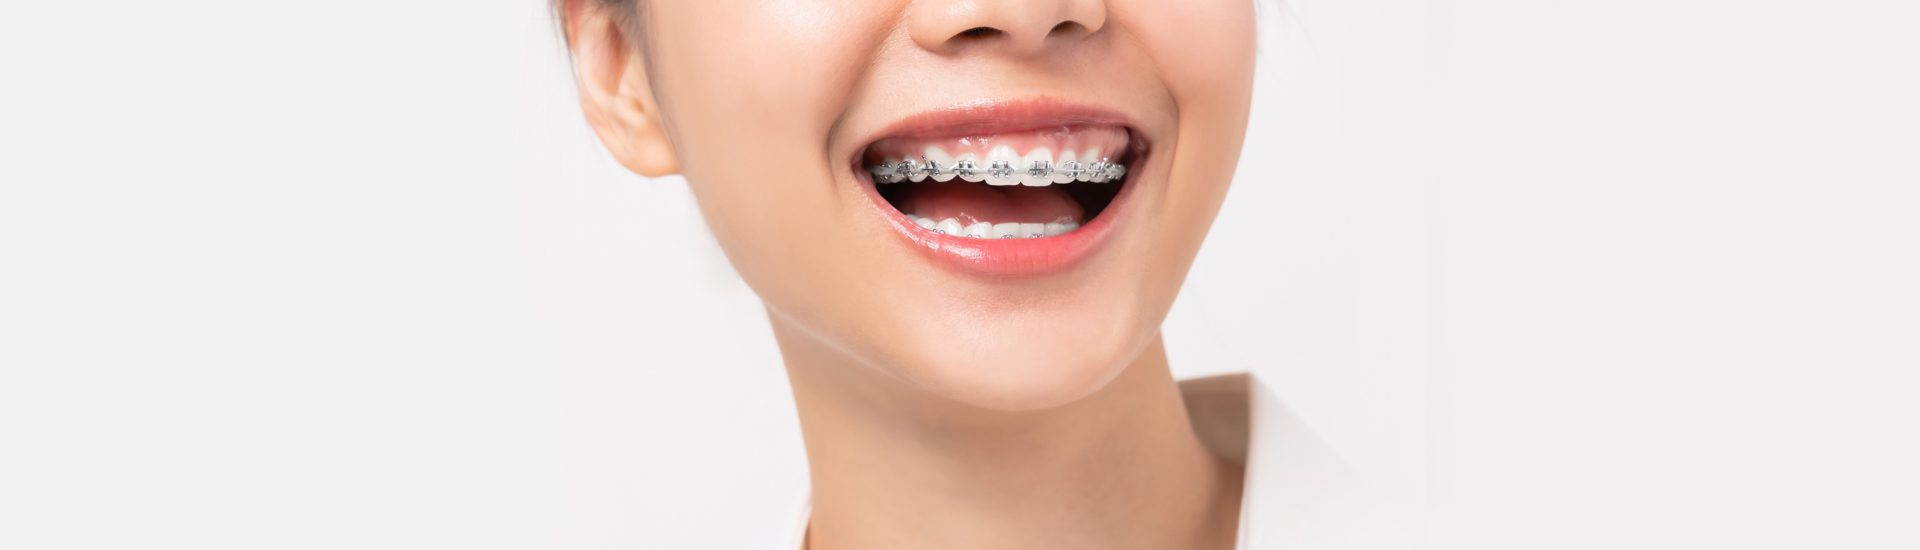 Orthodontics: Do Braces and Other Orthodontic Devices Work?